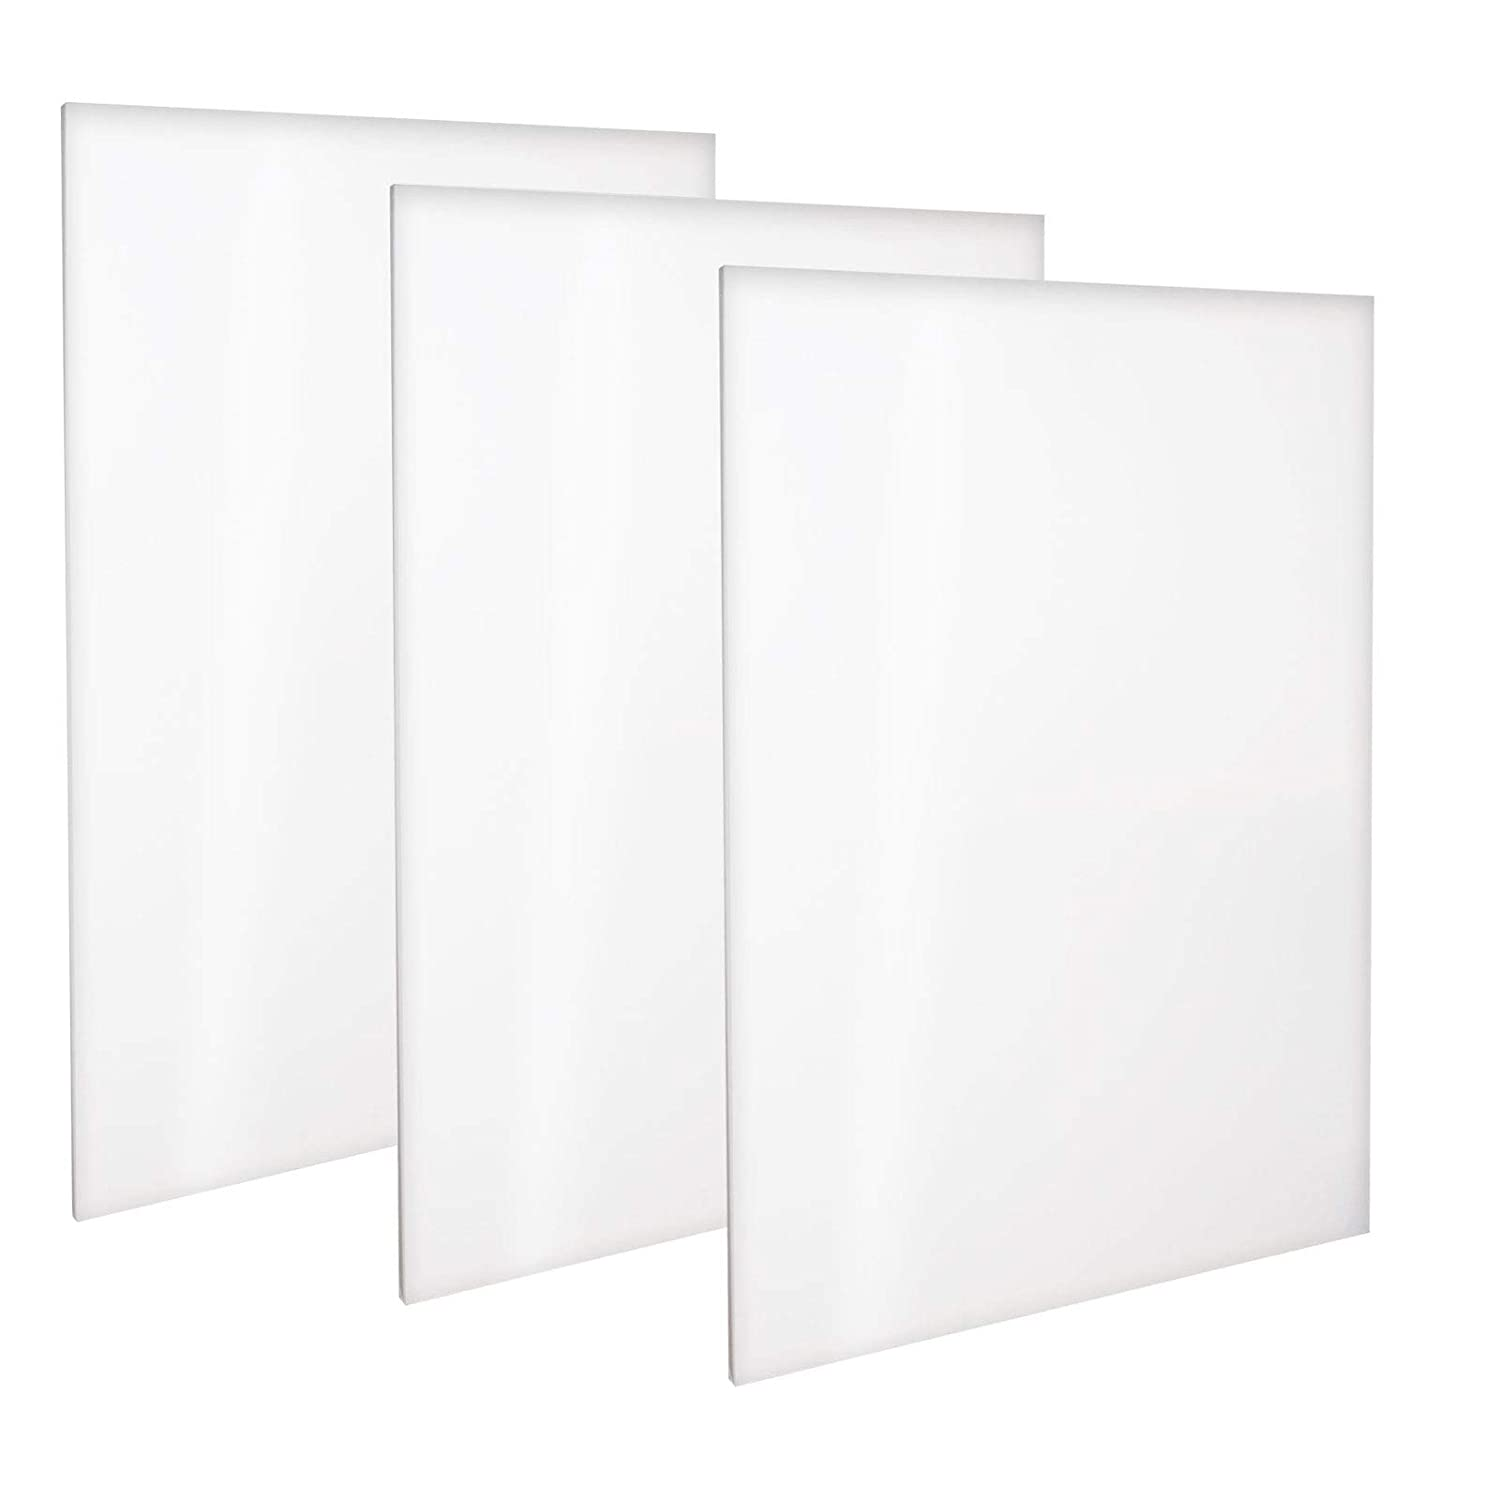 Kurtzy 3 Pack Canvas Set - White Canvas for Artist - Canvas Panel Board of Size 90 x 60cm - Blank Stretched Canvas for Acrylic Painting - Water Painting board - Oil Painting Canvas Board 35X24 Inches